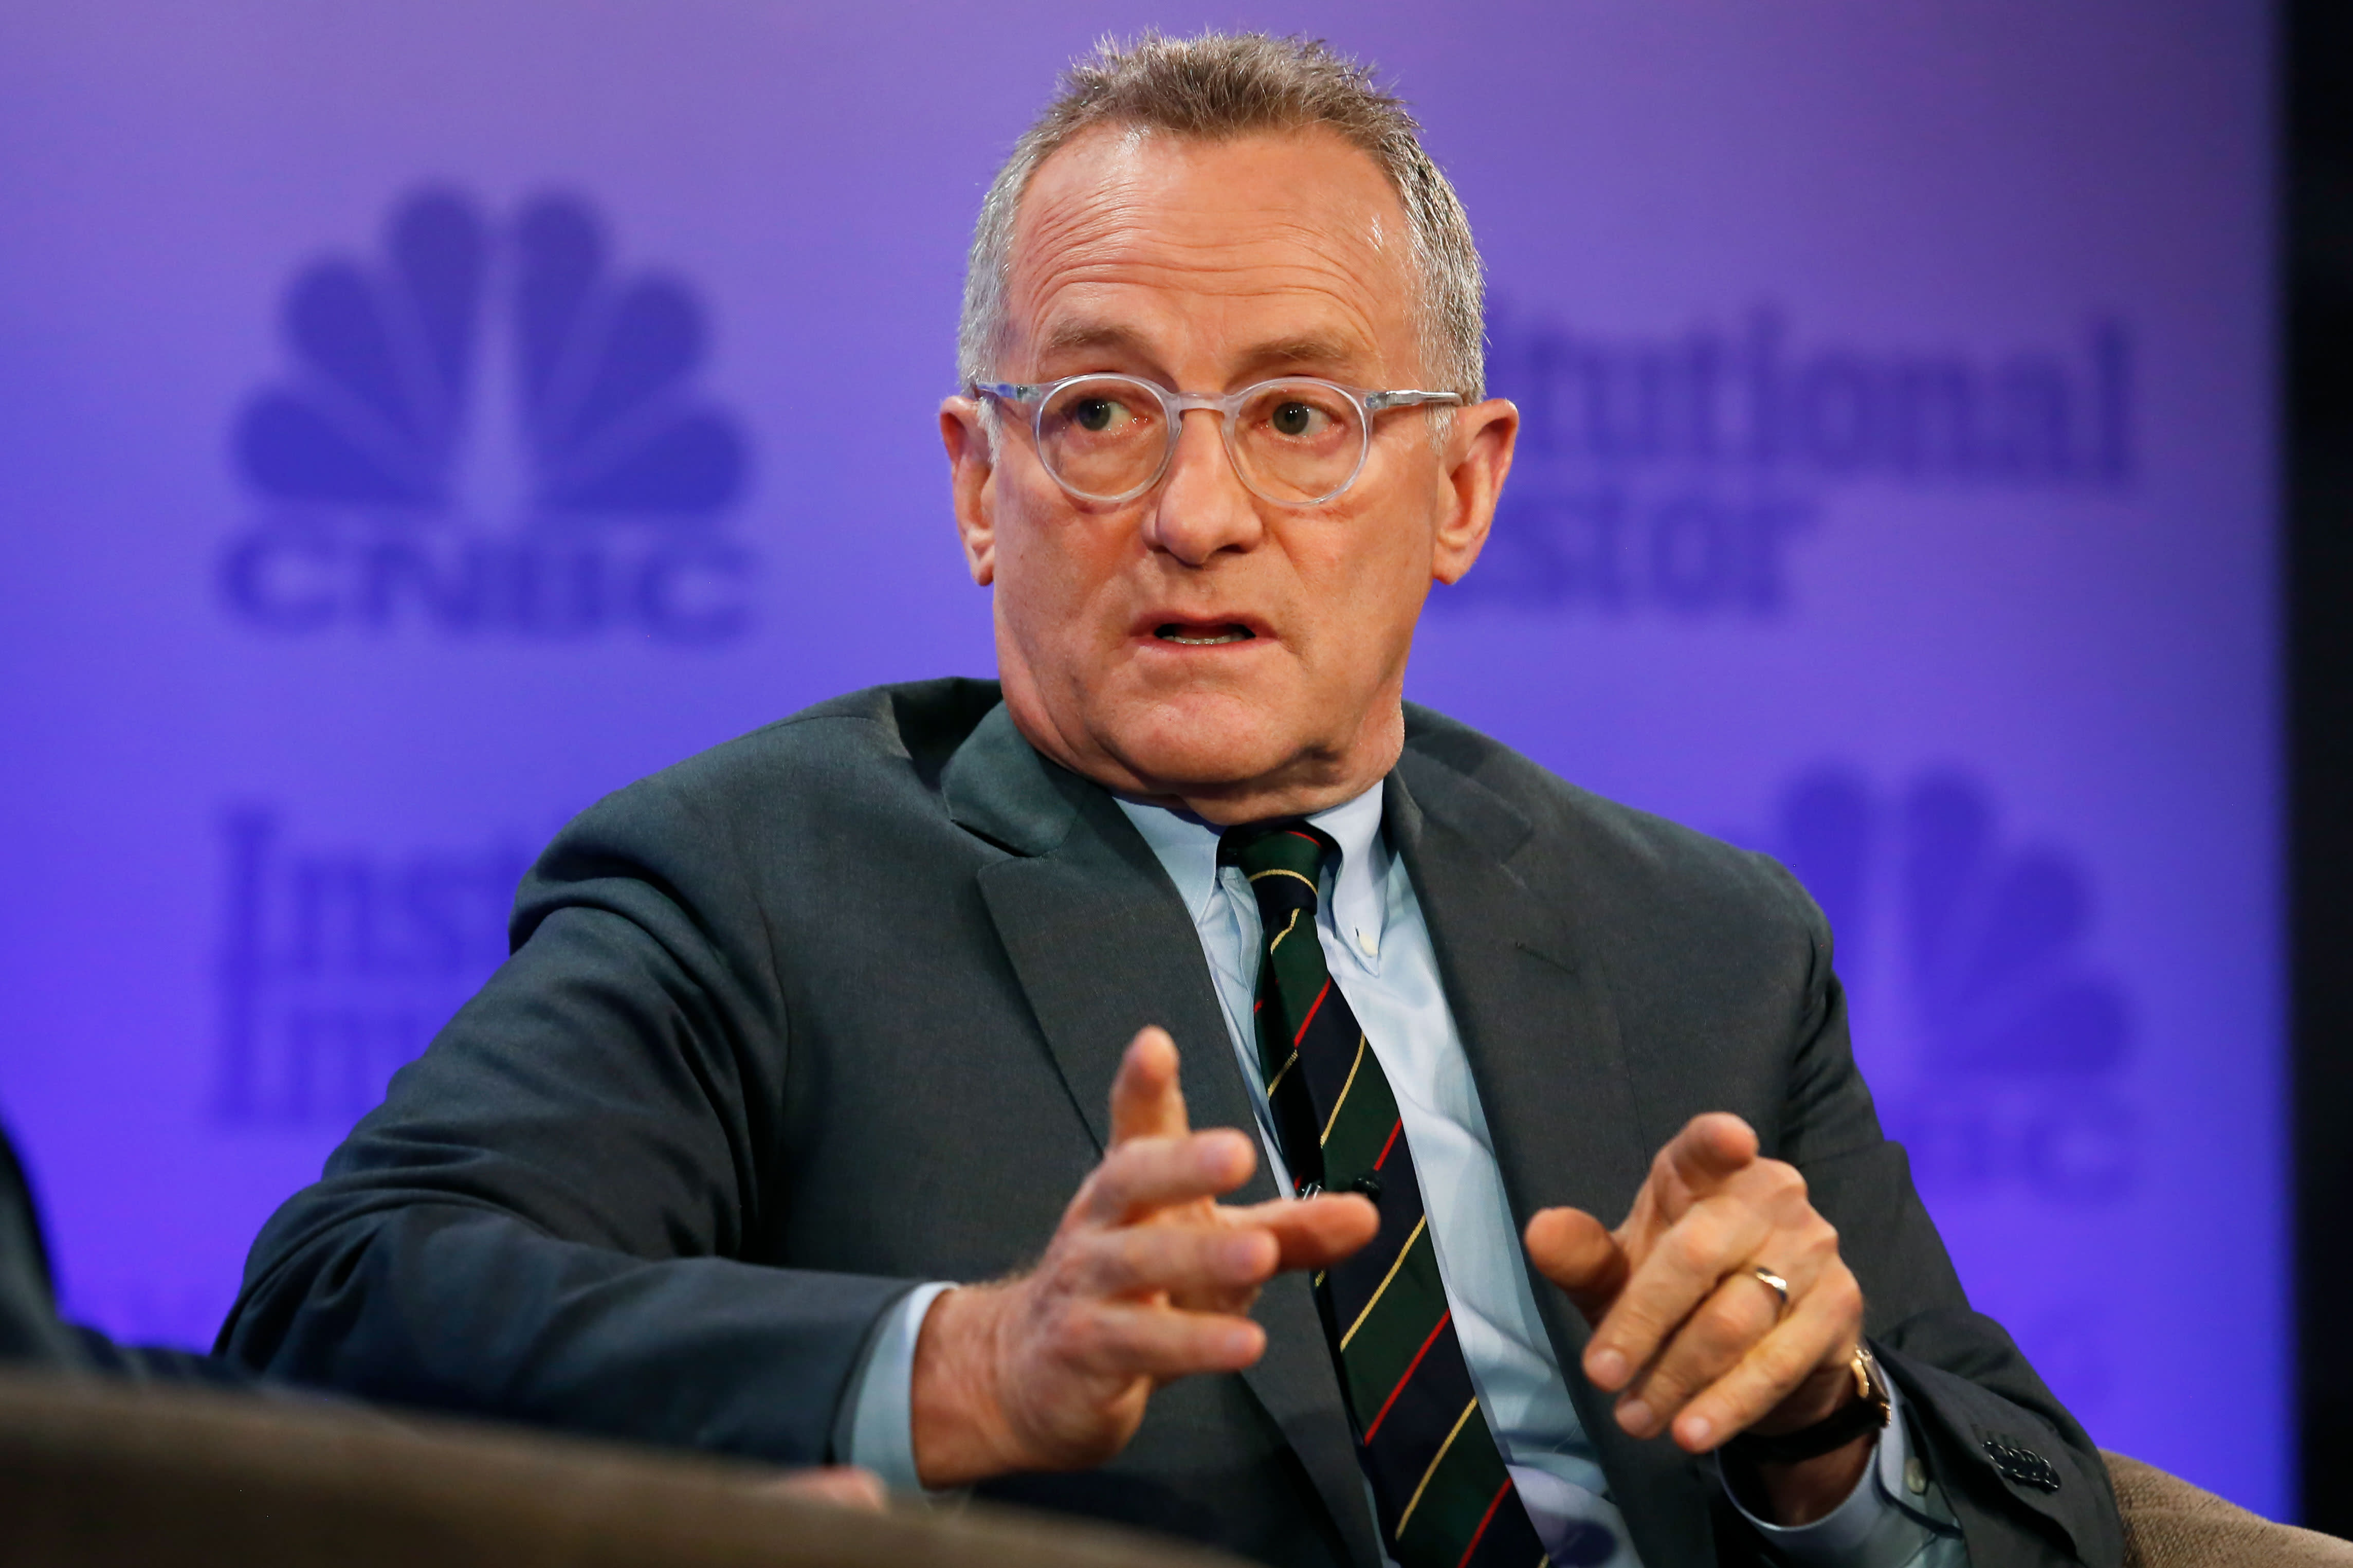 Billionaire investor Howard Marks says we're not in a bubble, but there are reasons to take less risk